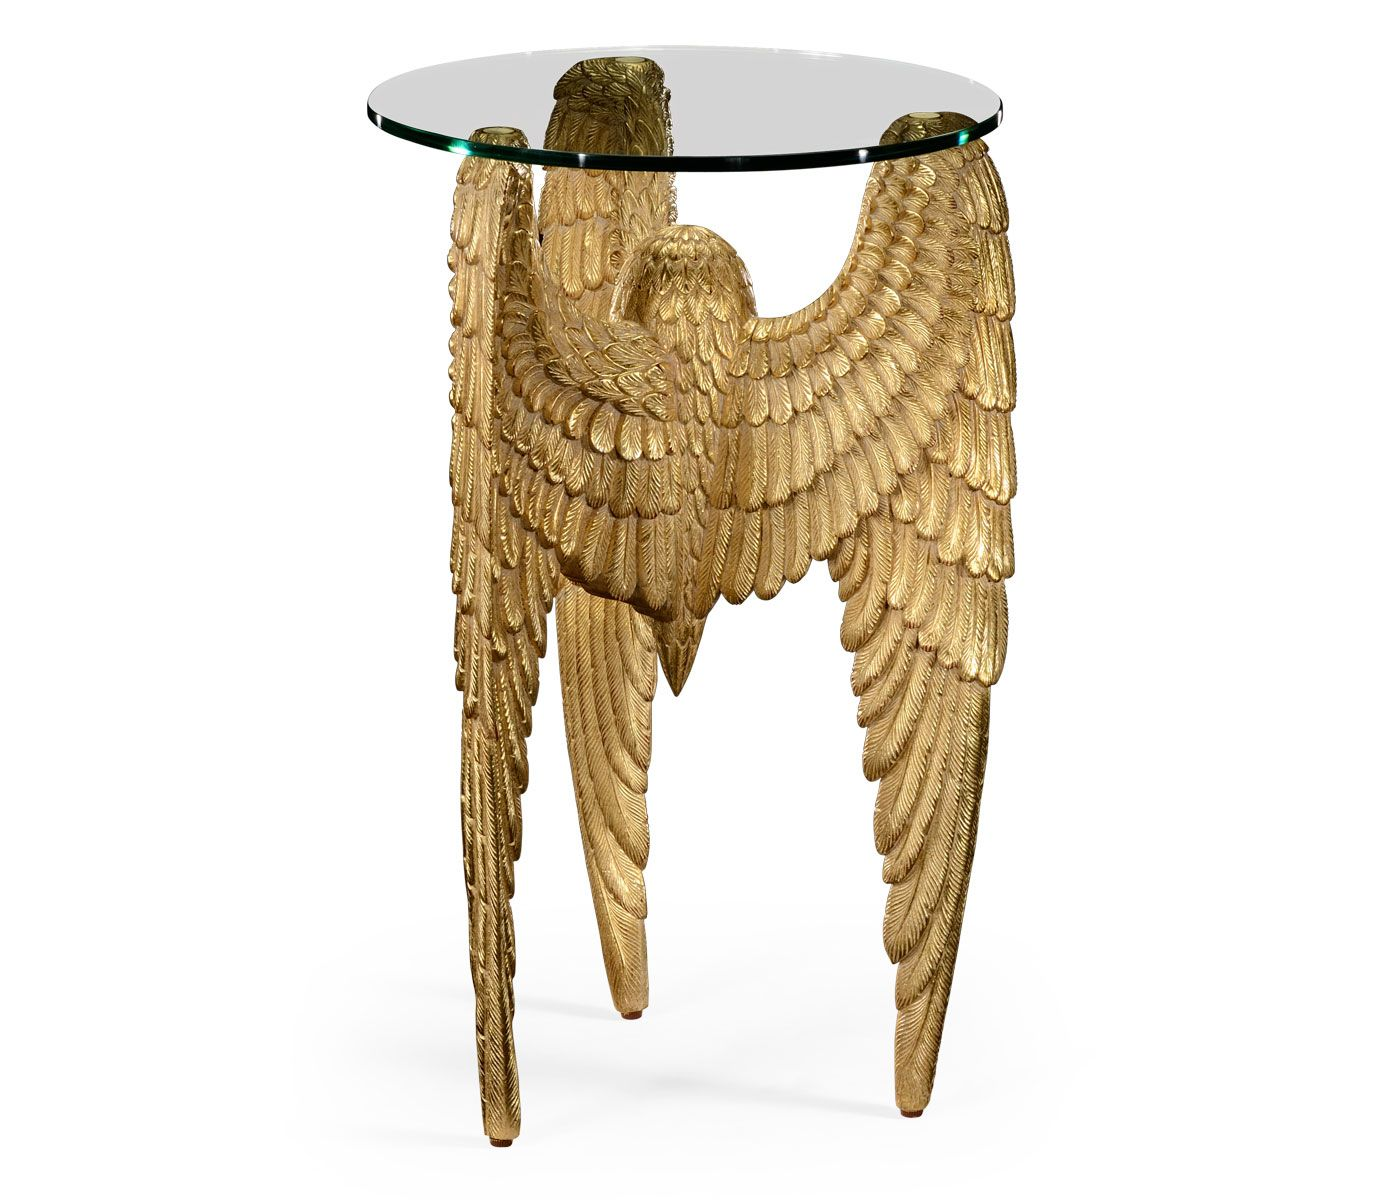 Limited Production Design 26 Tall Gold Gilded Angels Wing Side Table Partner Wall